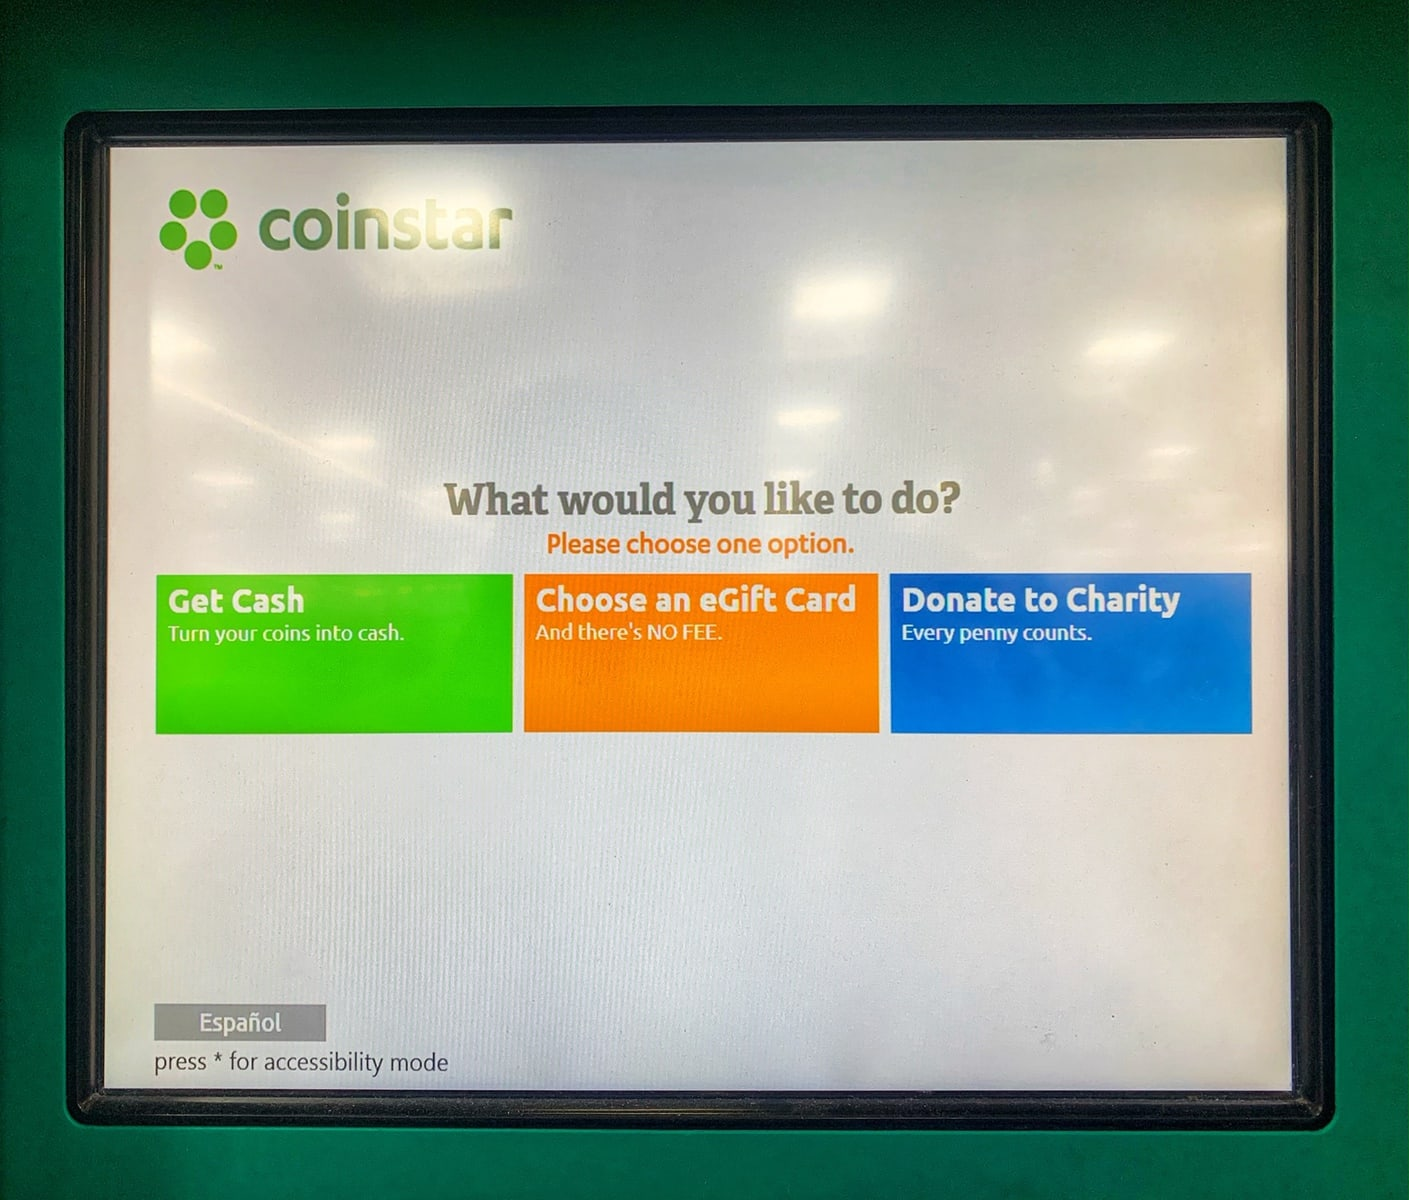 choose coinstar gift card, cash or donate